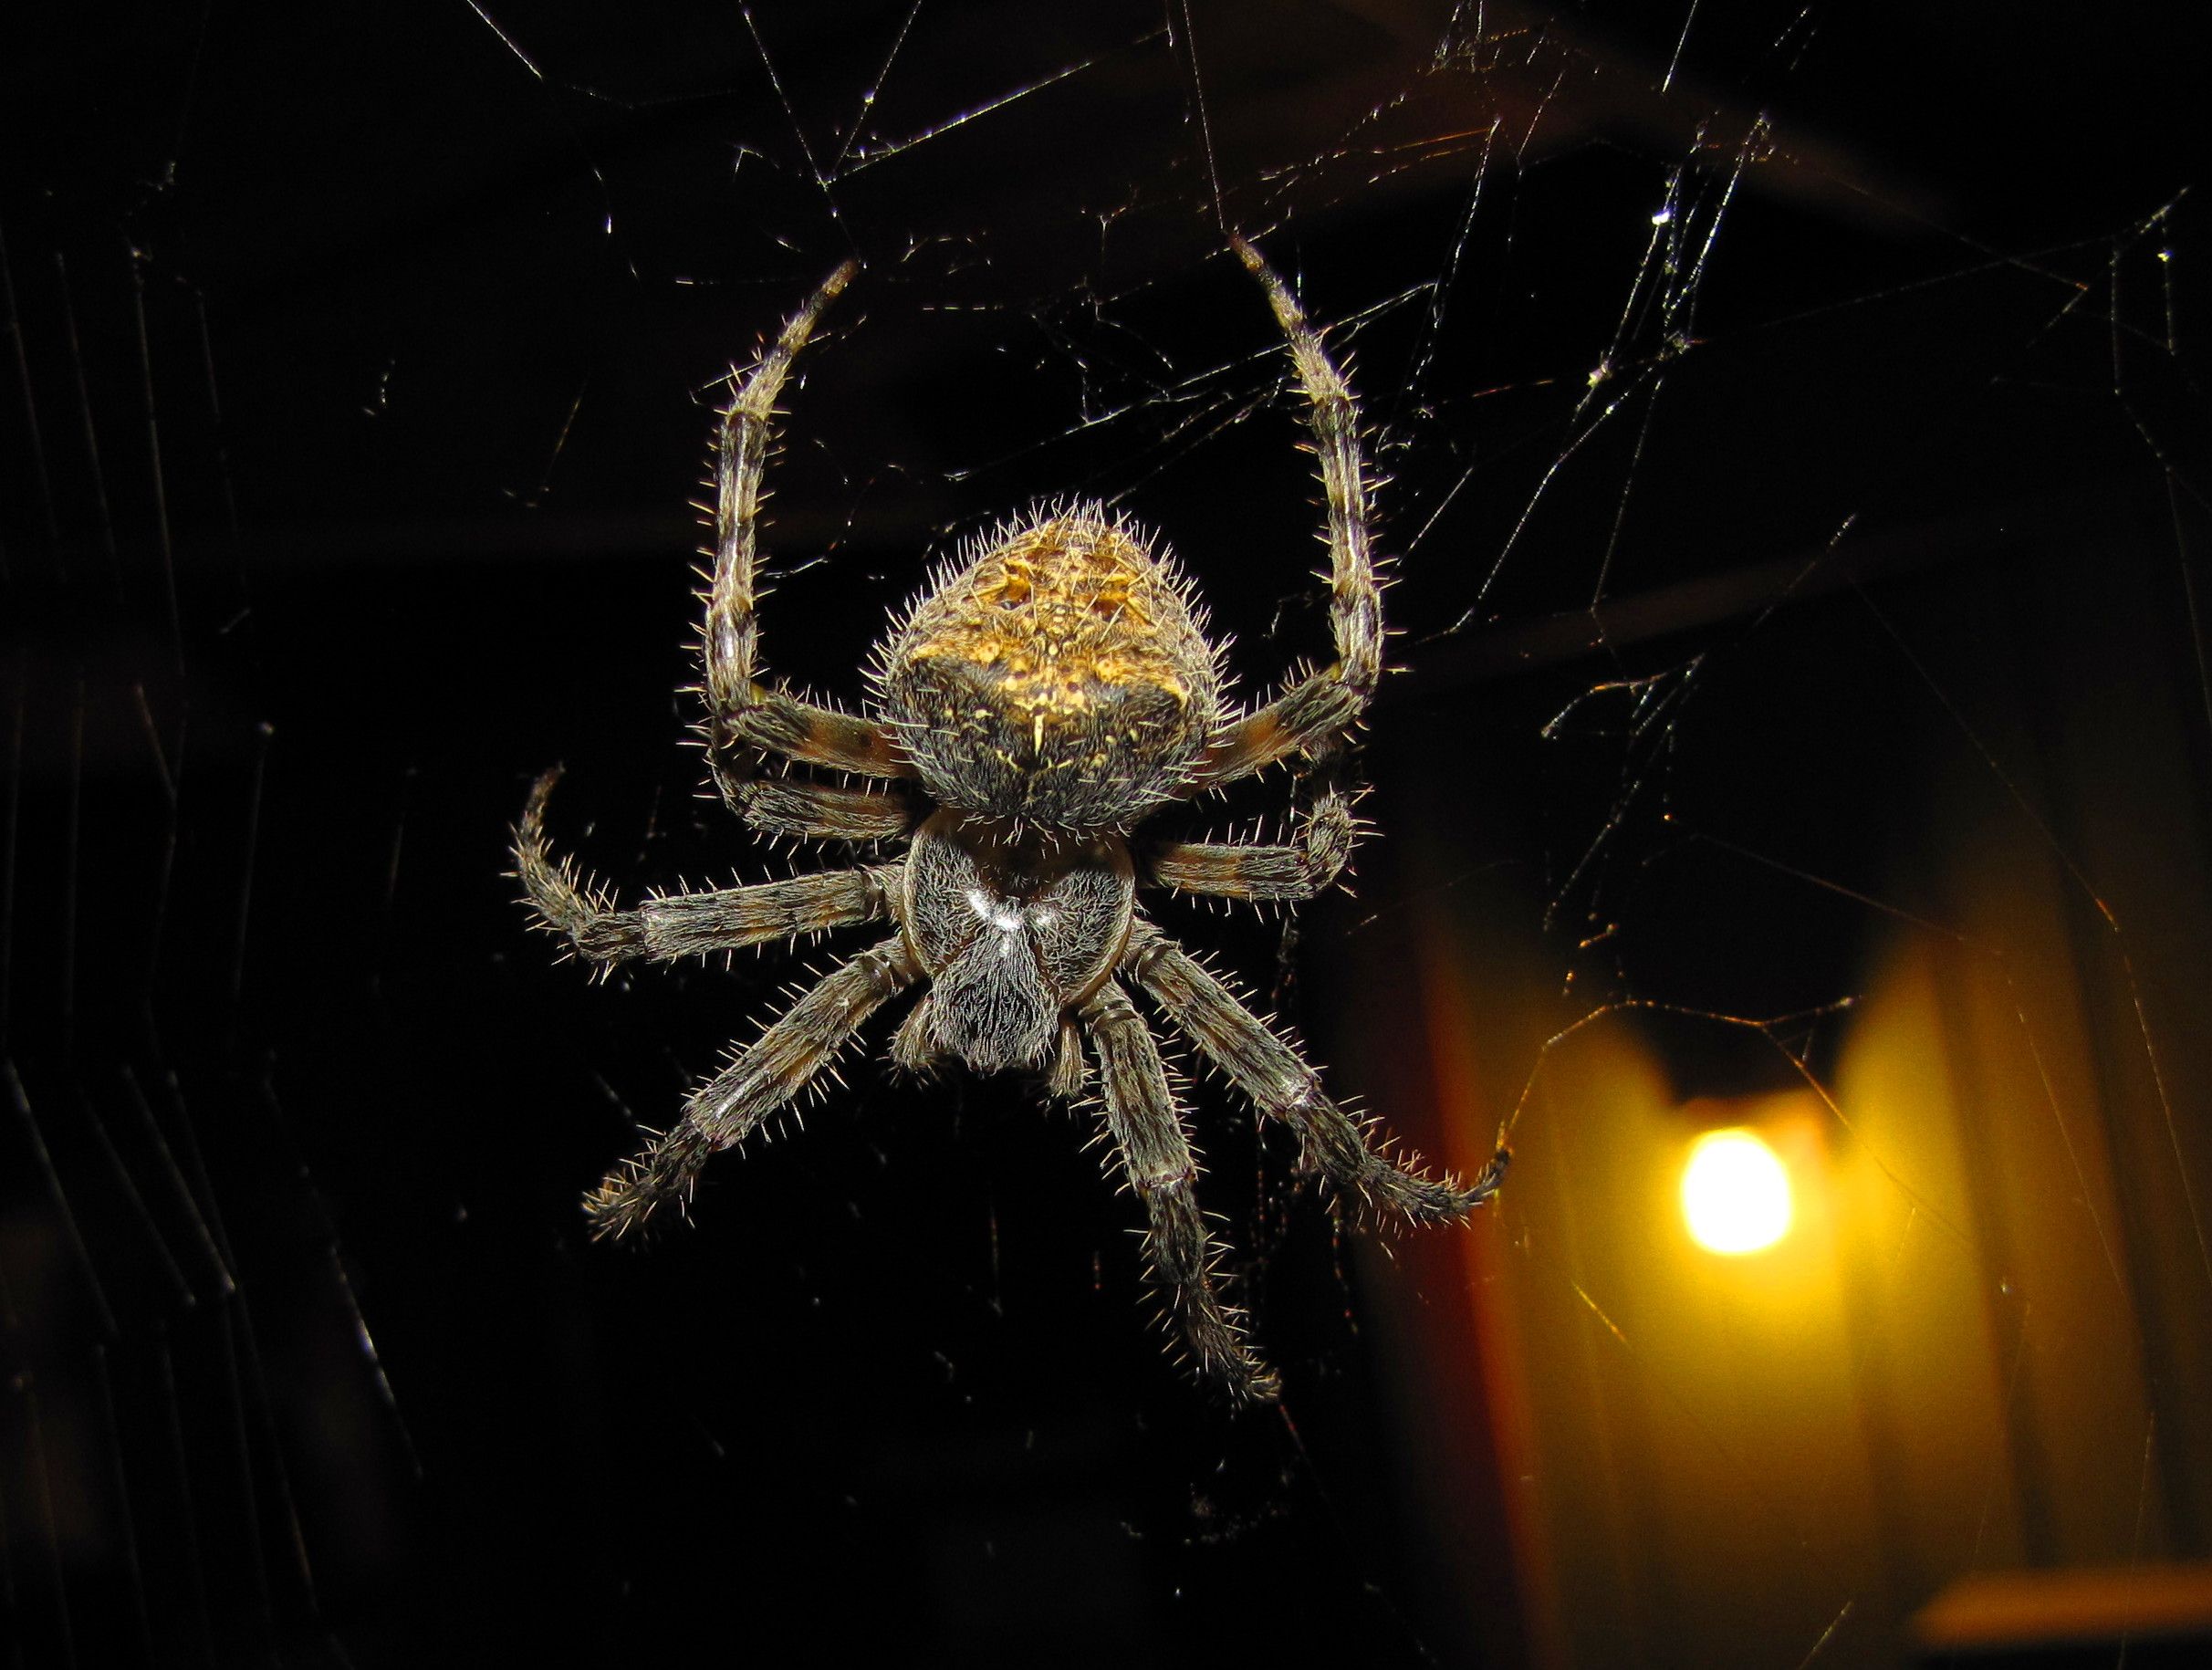 Spider on the Porch